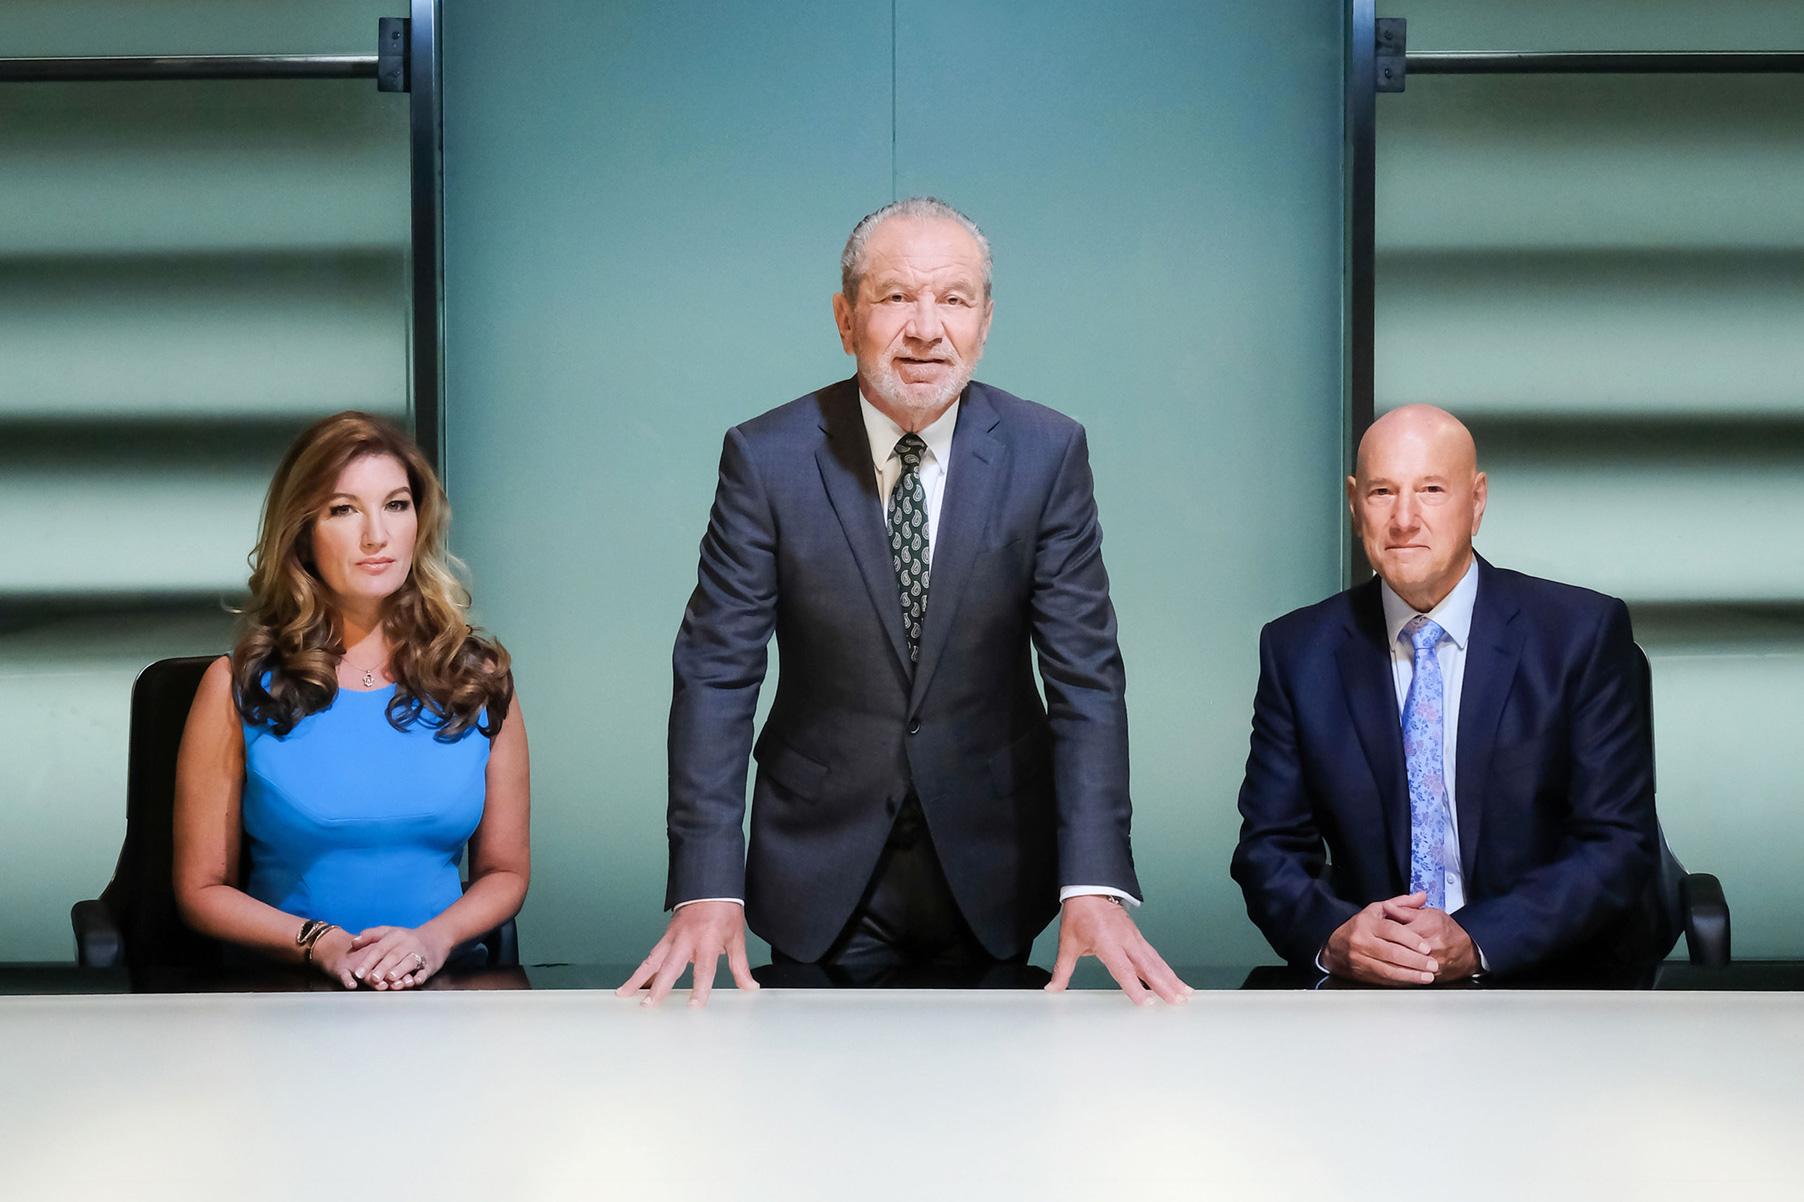 The Apprentice's Lord Sugar, Karren Brady and Claude Littner